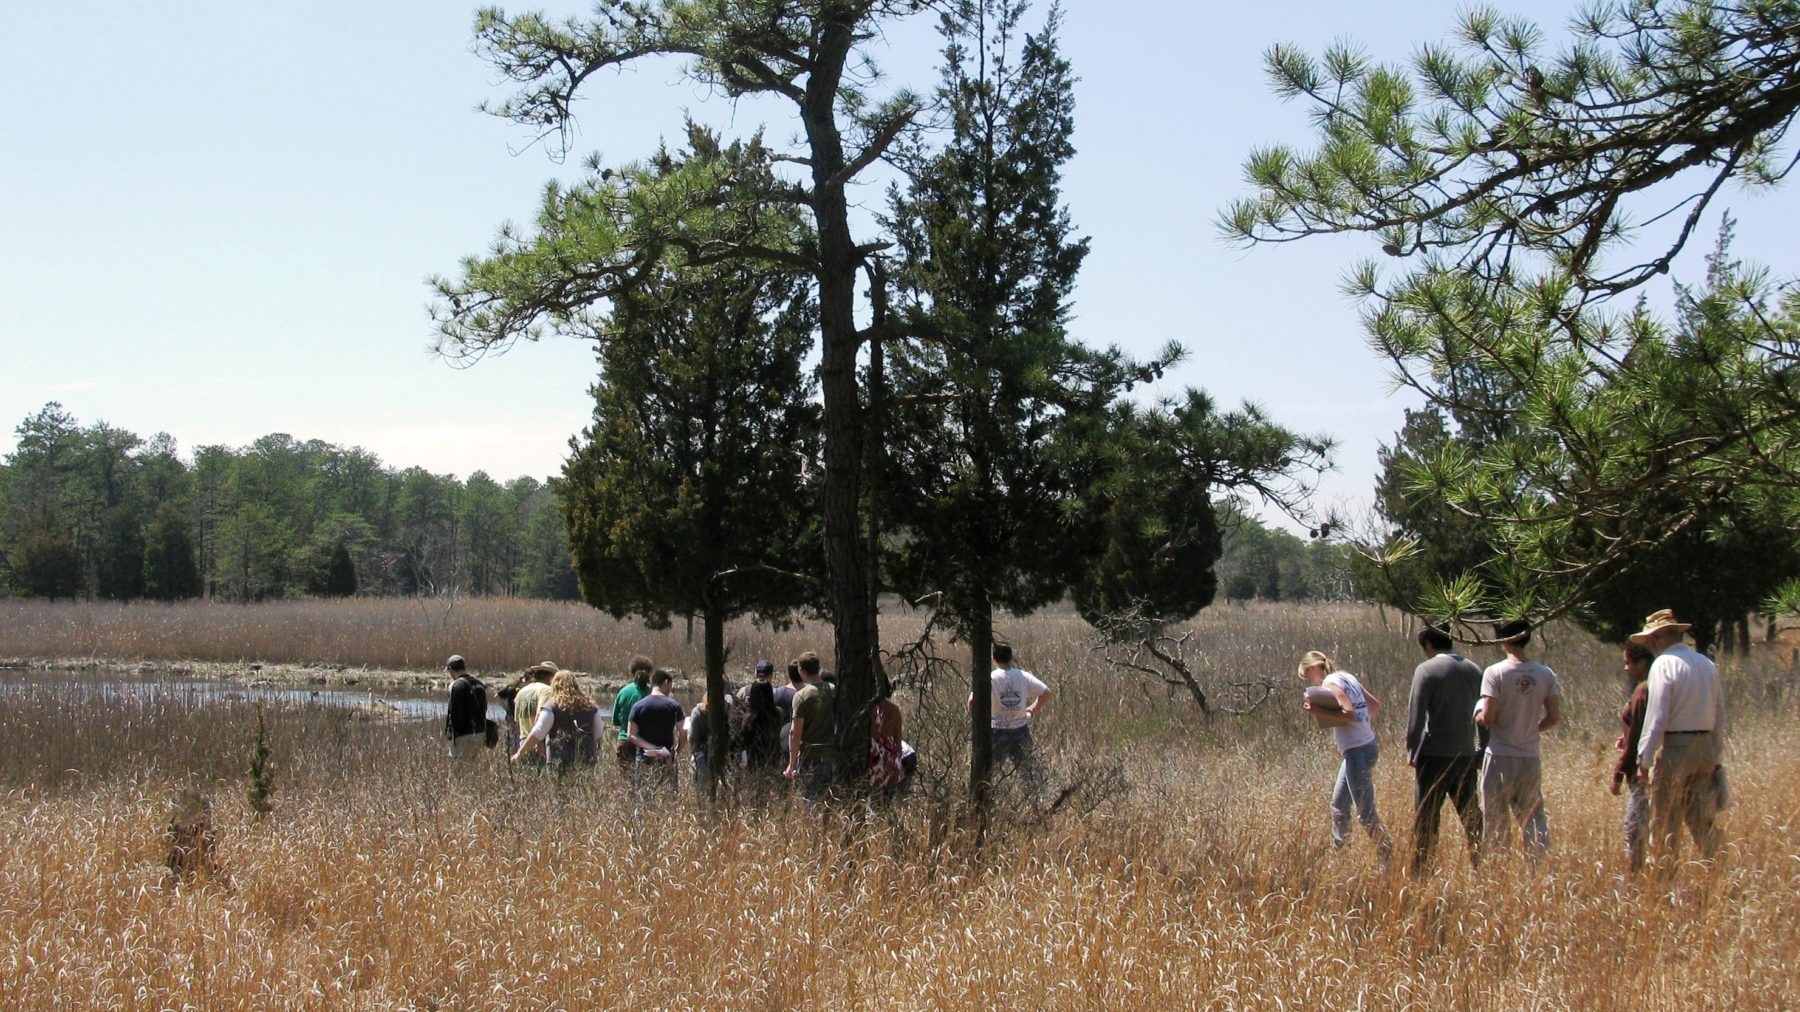 People on a group hike in the Pine Barrens